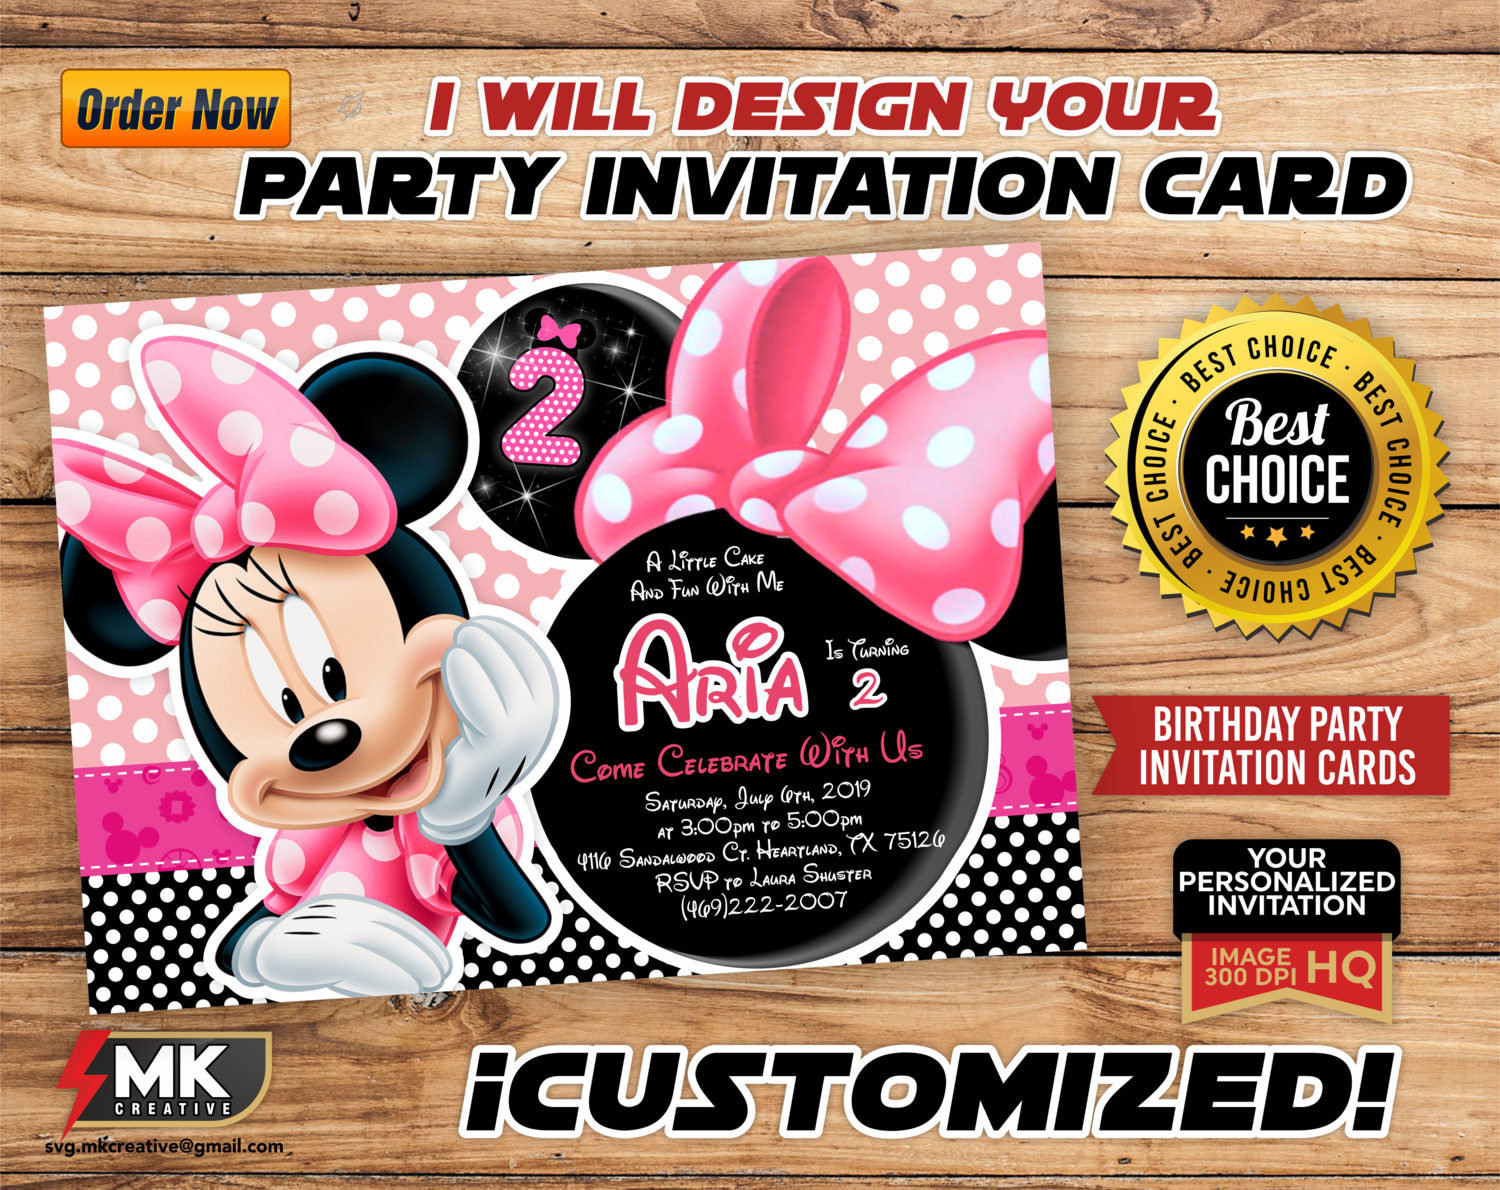 CUSTOM PARTY INVITATION CARD, custom birthday invitation, cards and  invitations, invitations, custom invite, invitation design, printable  digital file, vector format High Quality - Instant Download